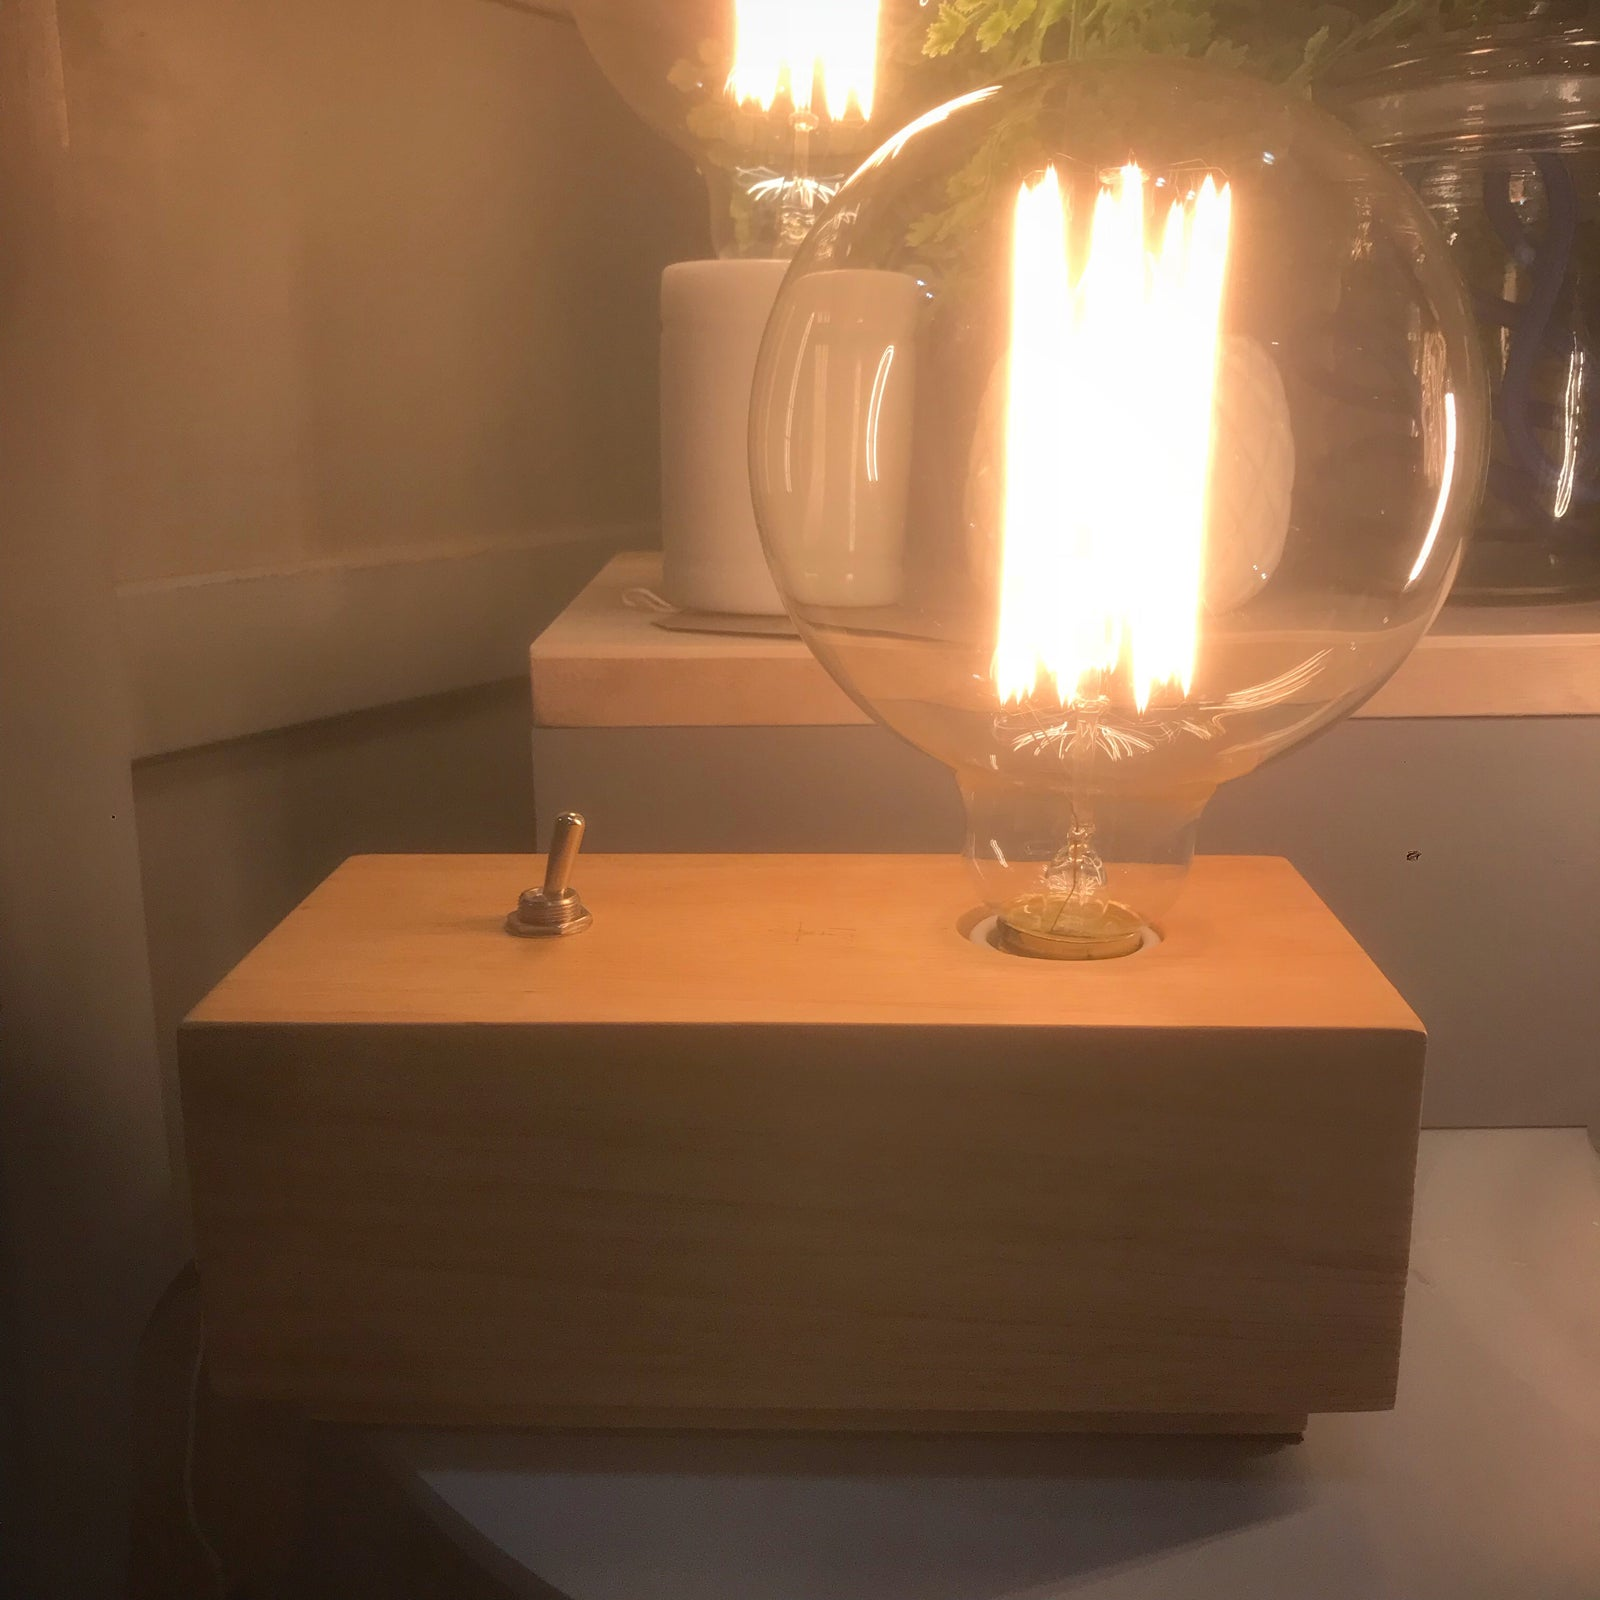 Josie S Wooden Block Table Lamp With Large Edison Filament Bulb